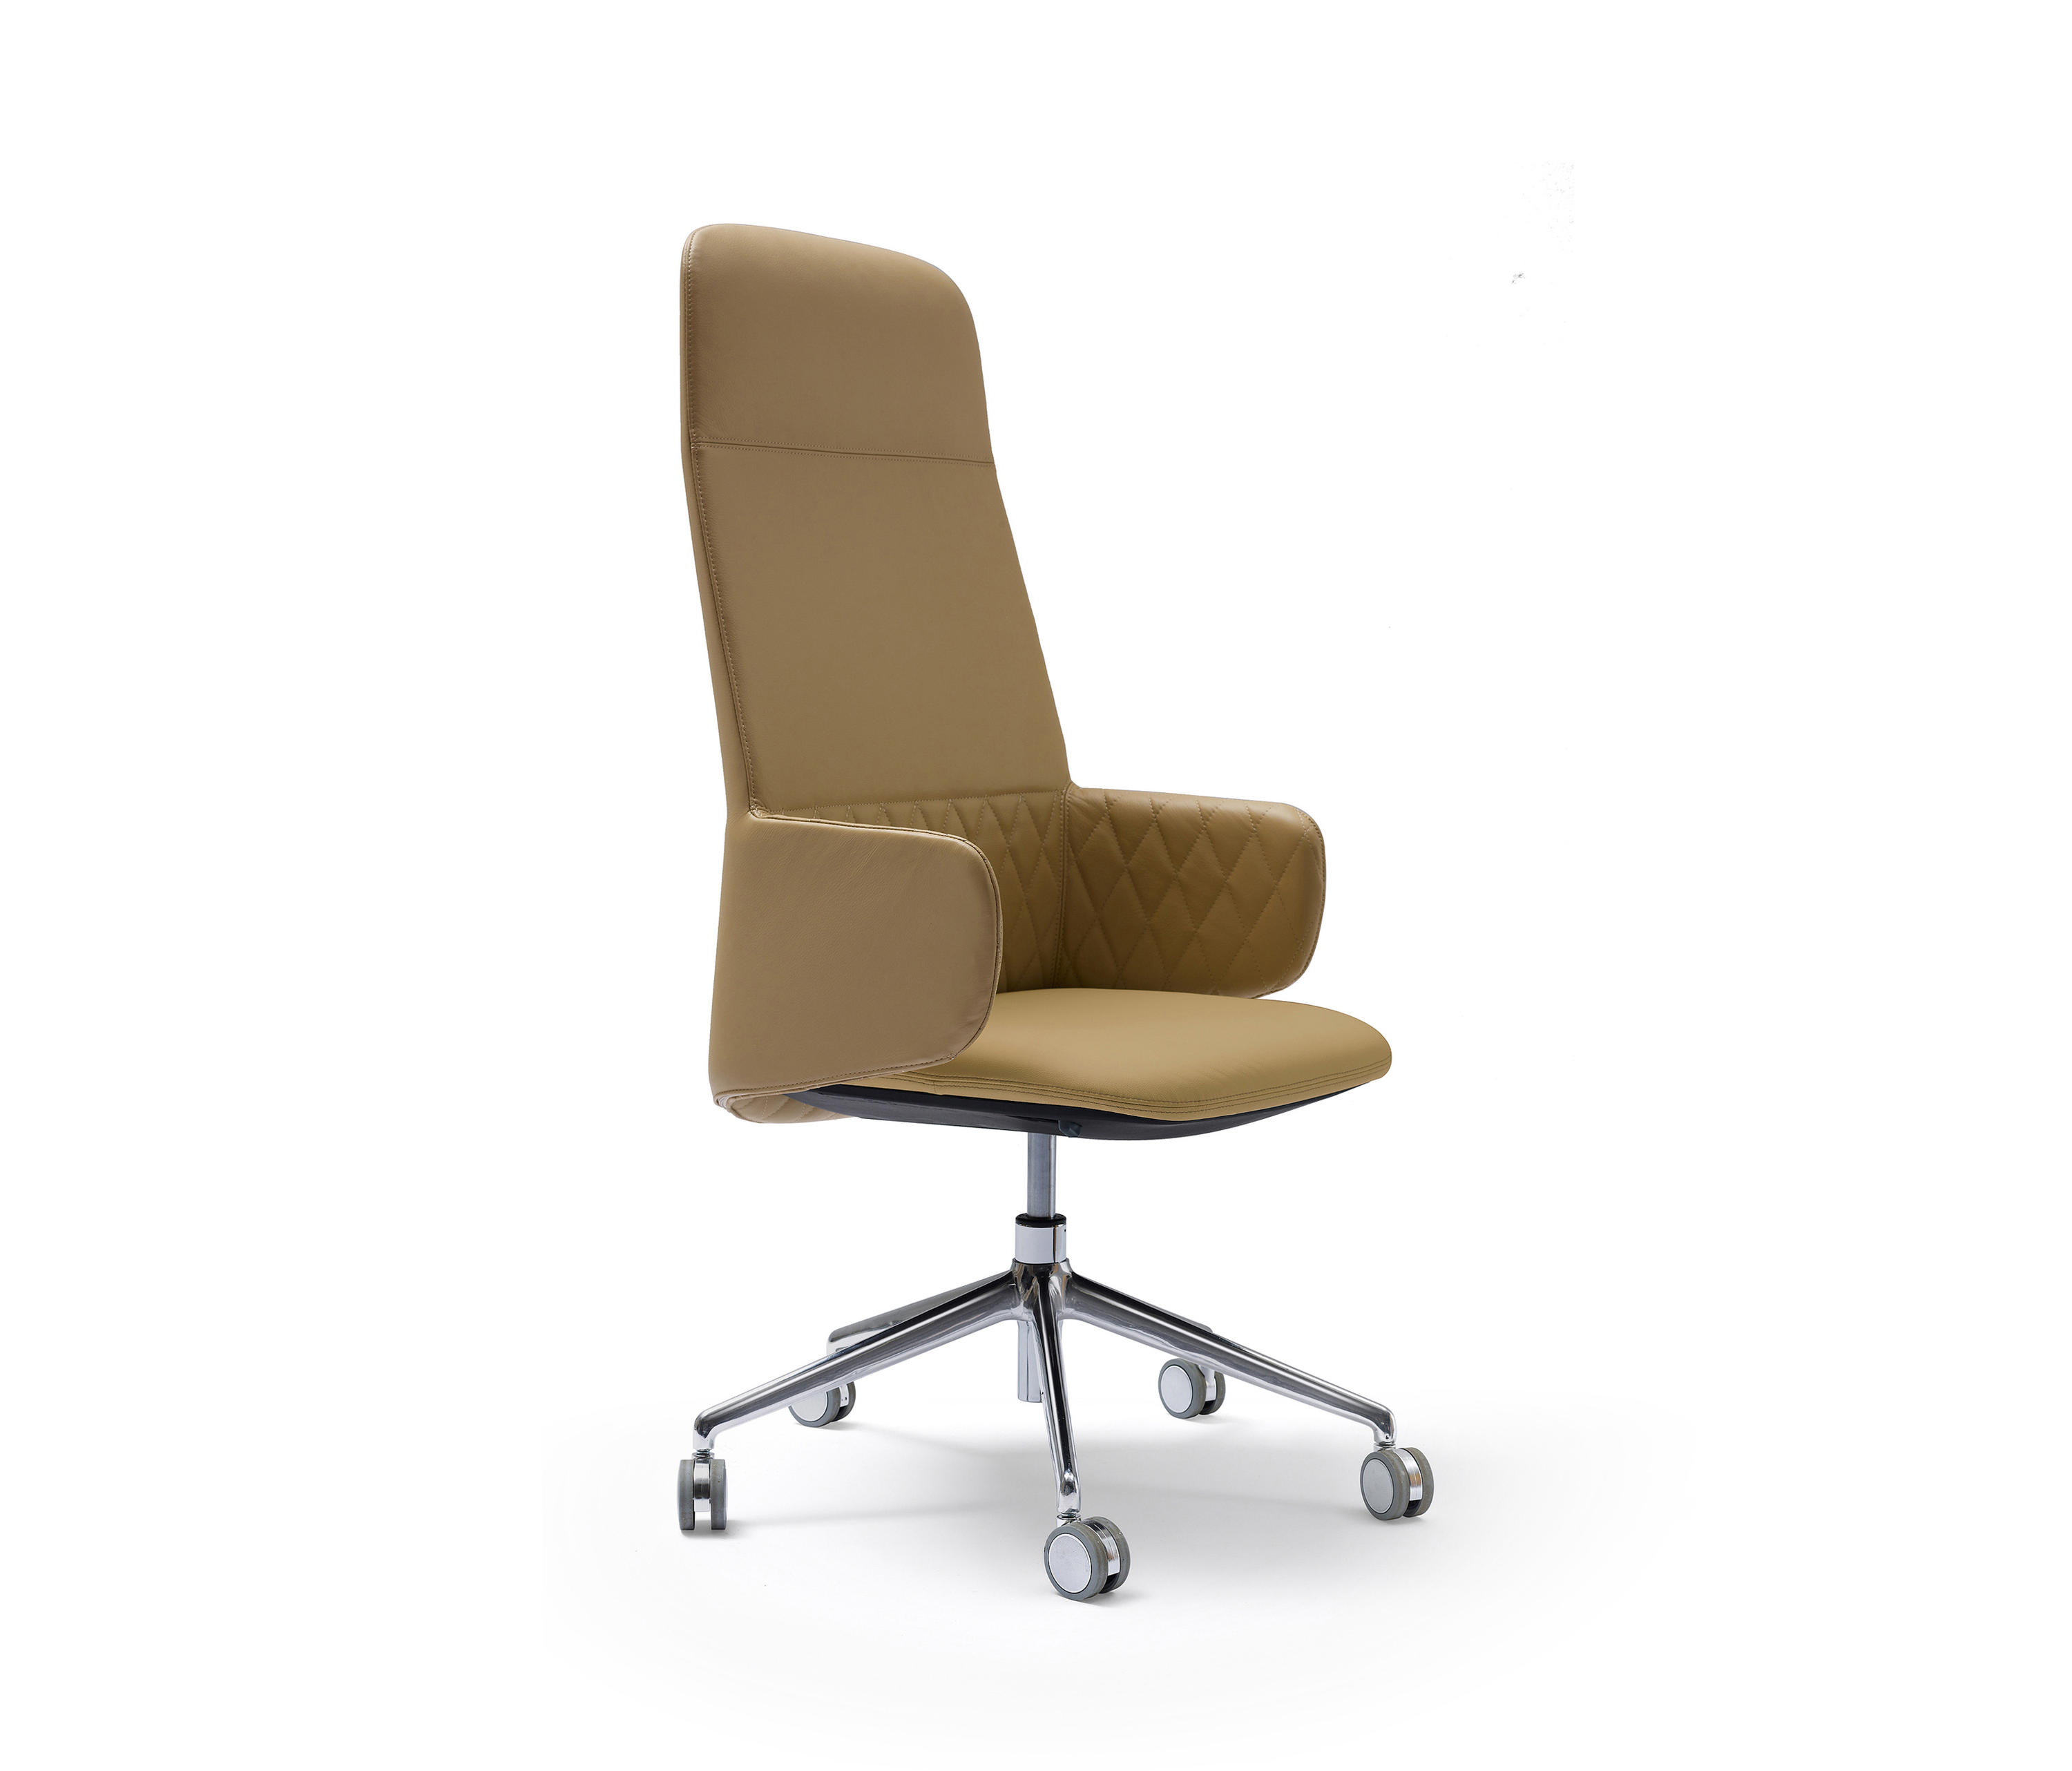 deep diamond office chairs from quinti sedute architonic